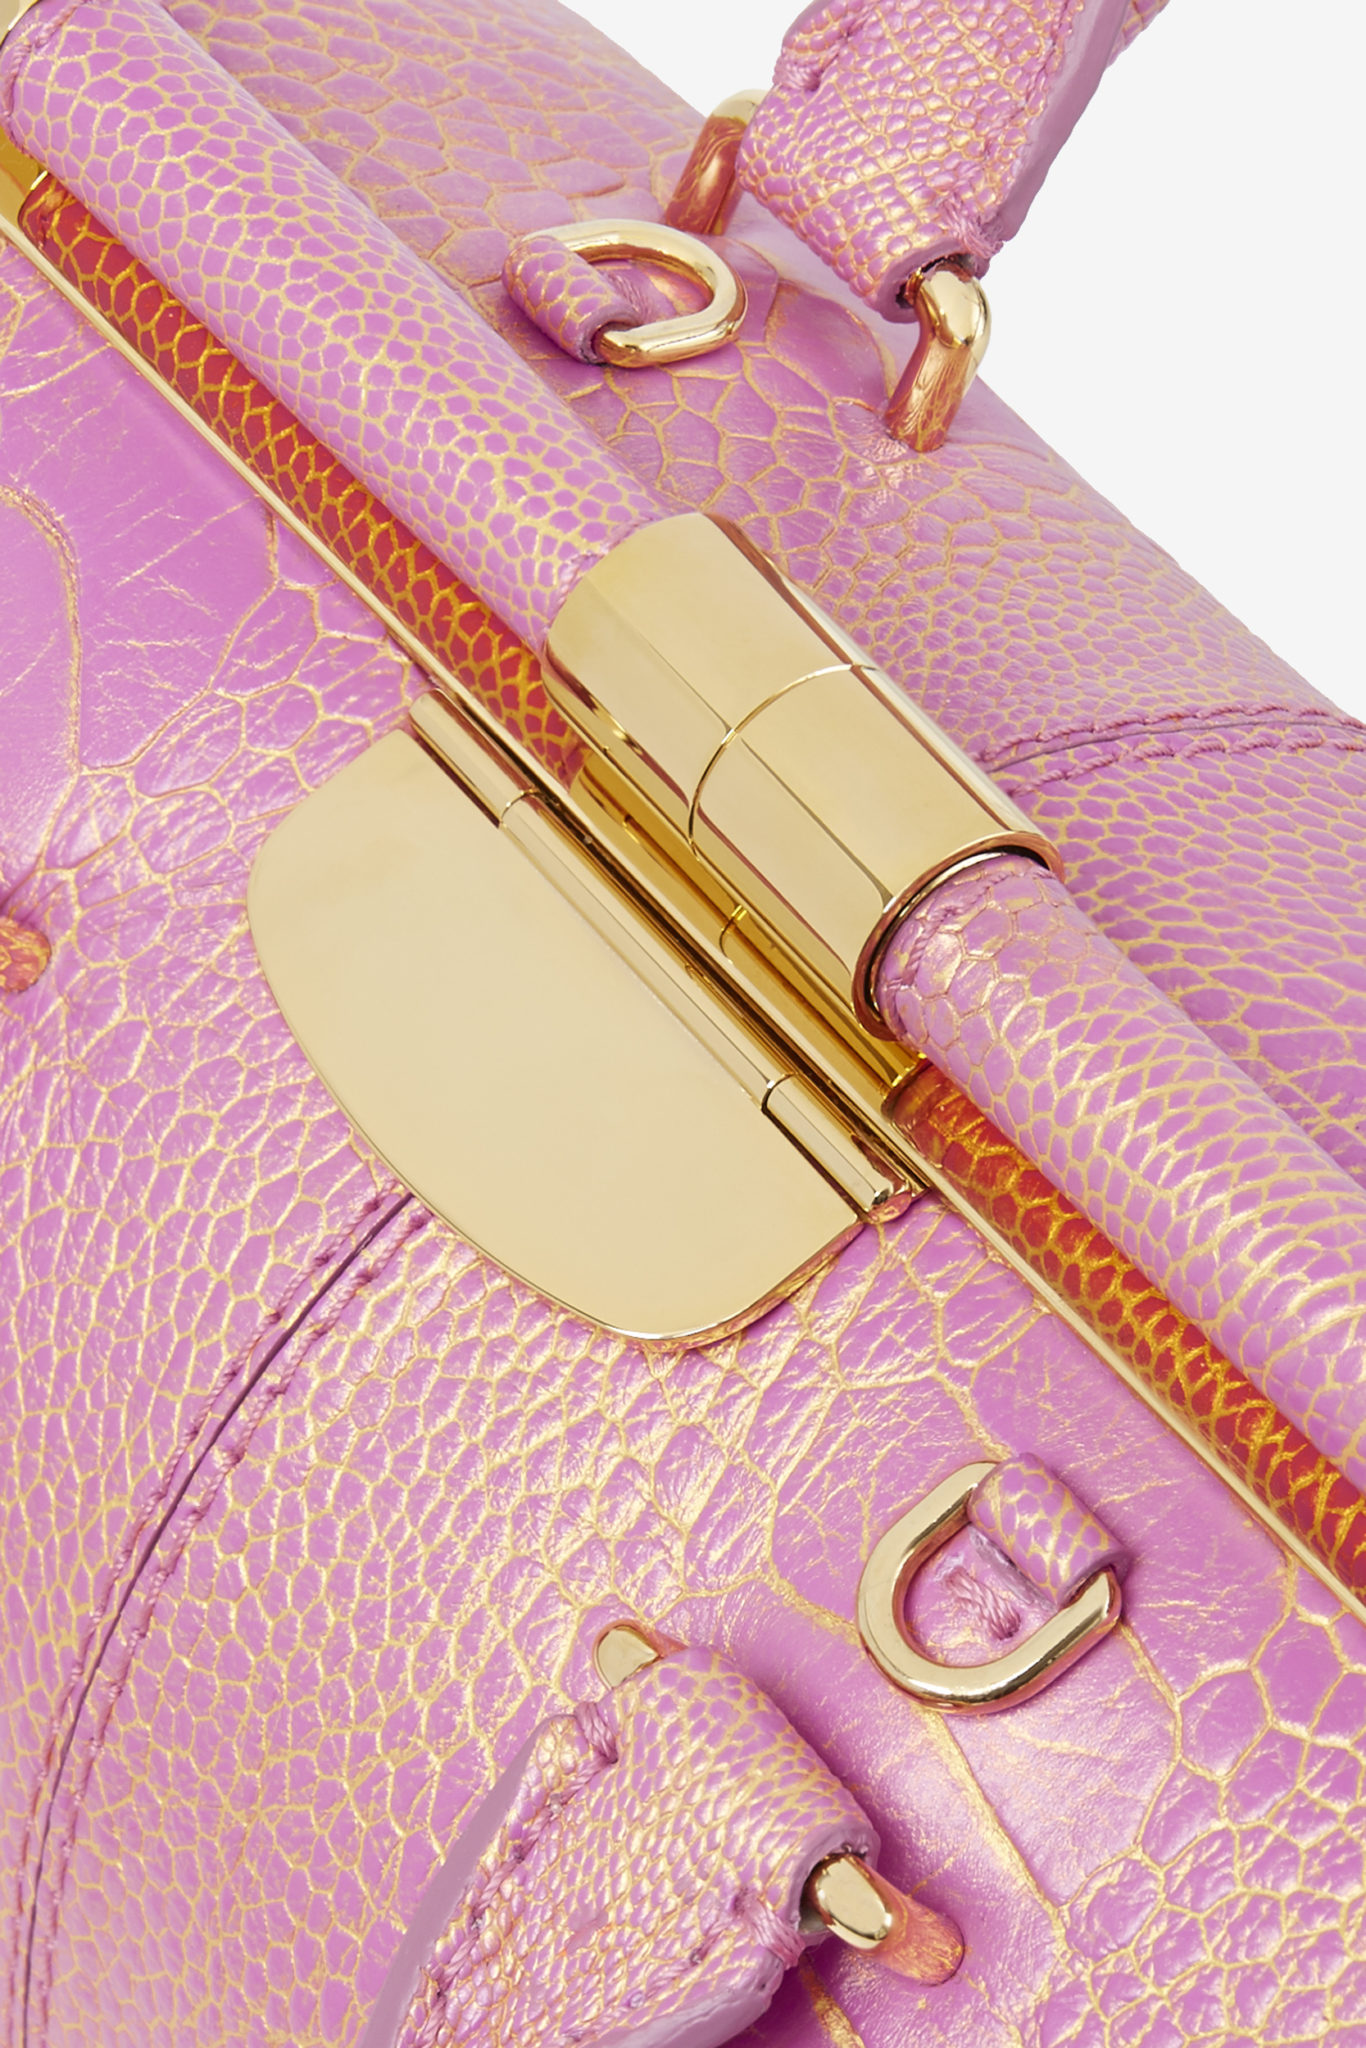 e-commerce product detail of pink and gold ostrich leg doctor bag